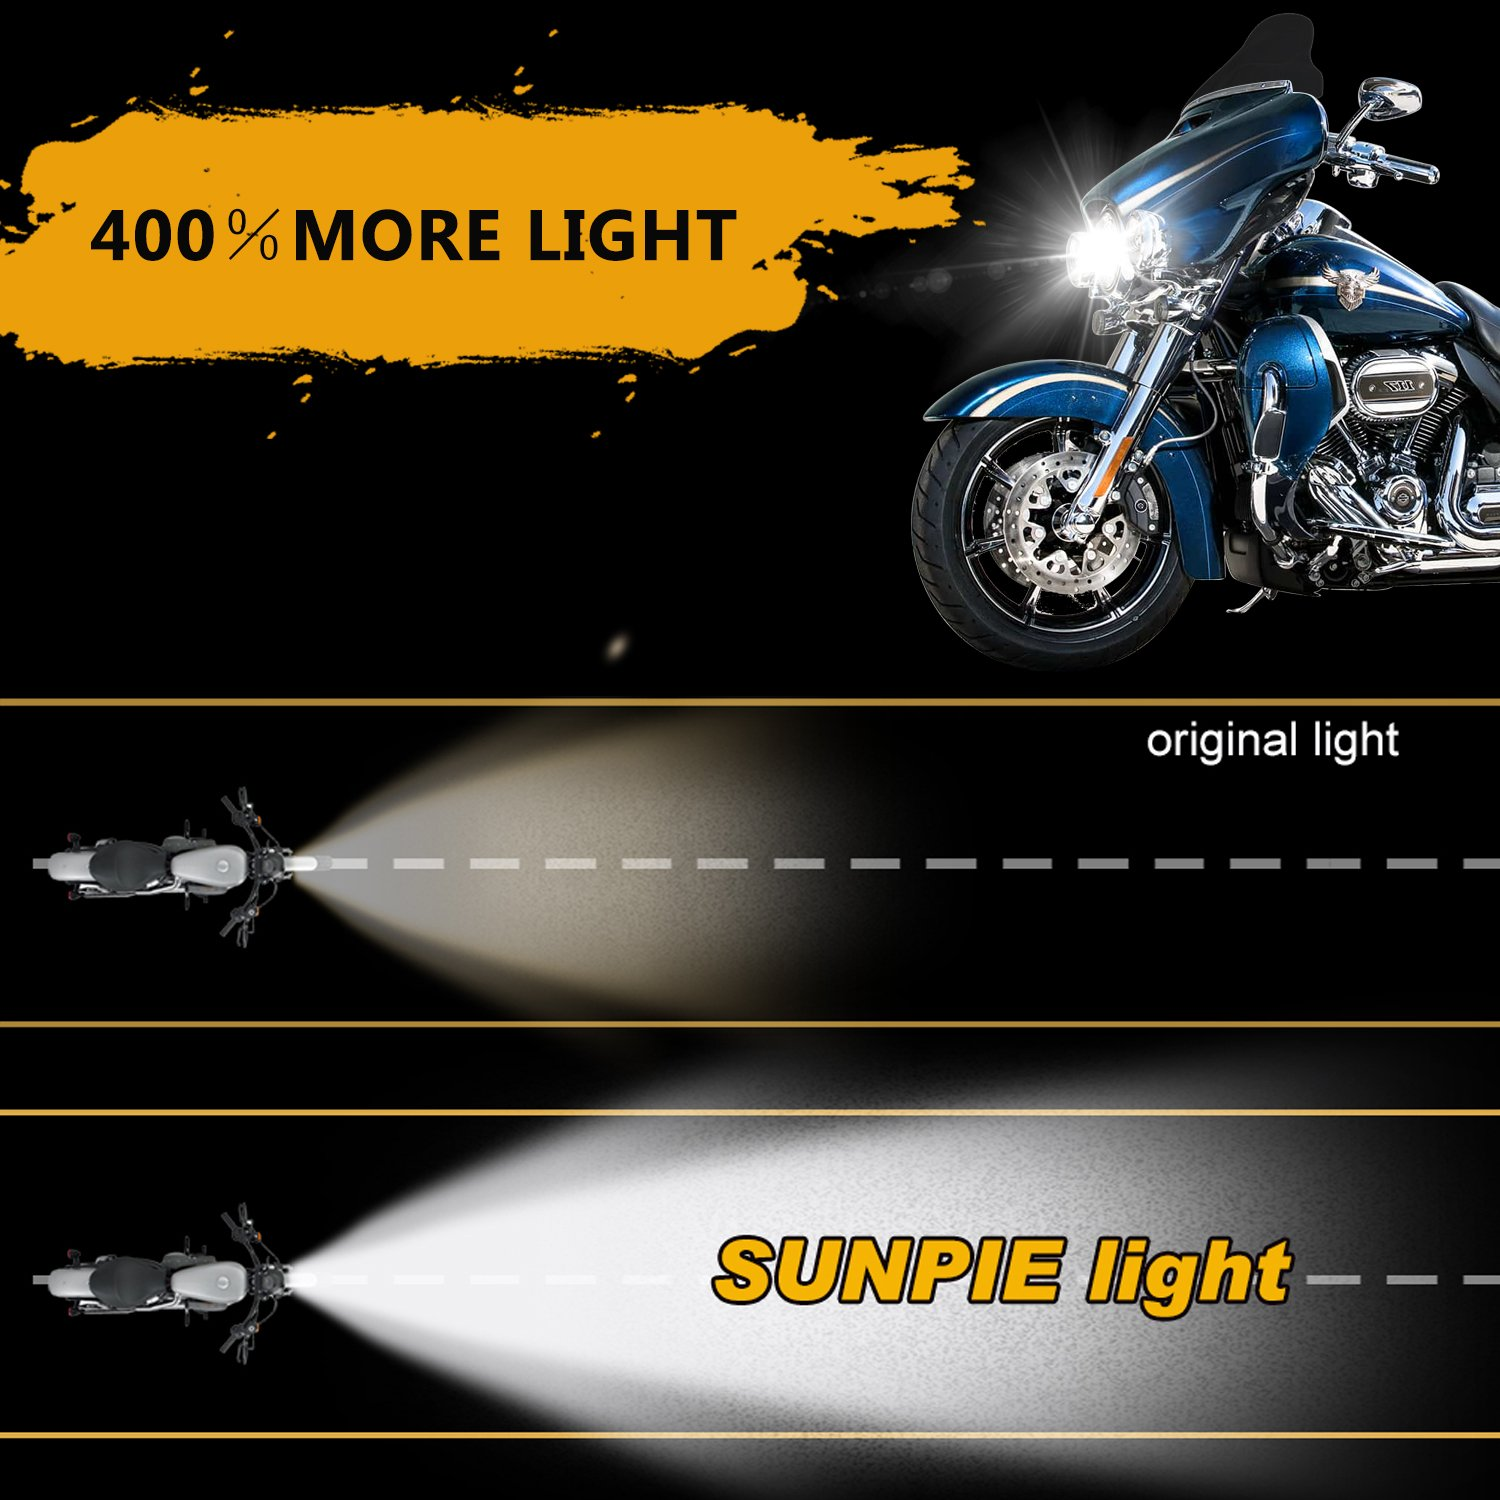 Motorcycle 7'' Daymaker LED Headlight for Harley Davidson Road King, Road Glide, Street Glide and Electra Glide,Ultra Limited with 4-1/2 LED Passing Lamps Fog Lights and Bracket Mounting Ring by SUNPIE (Image #6)